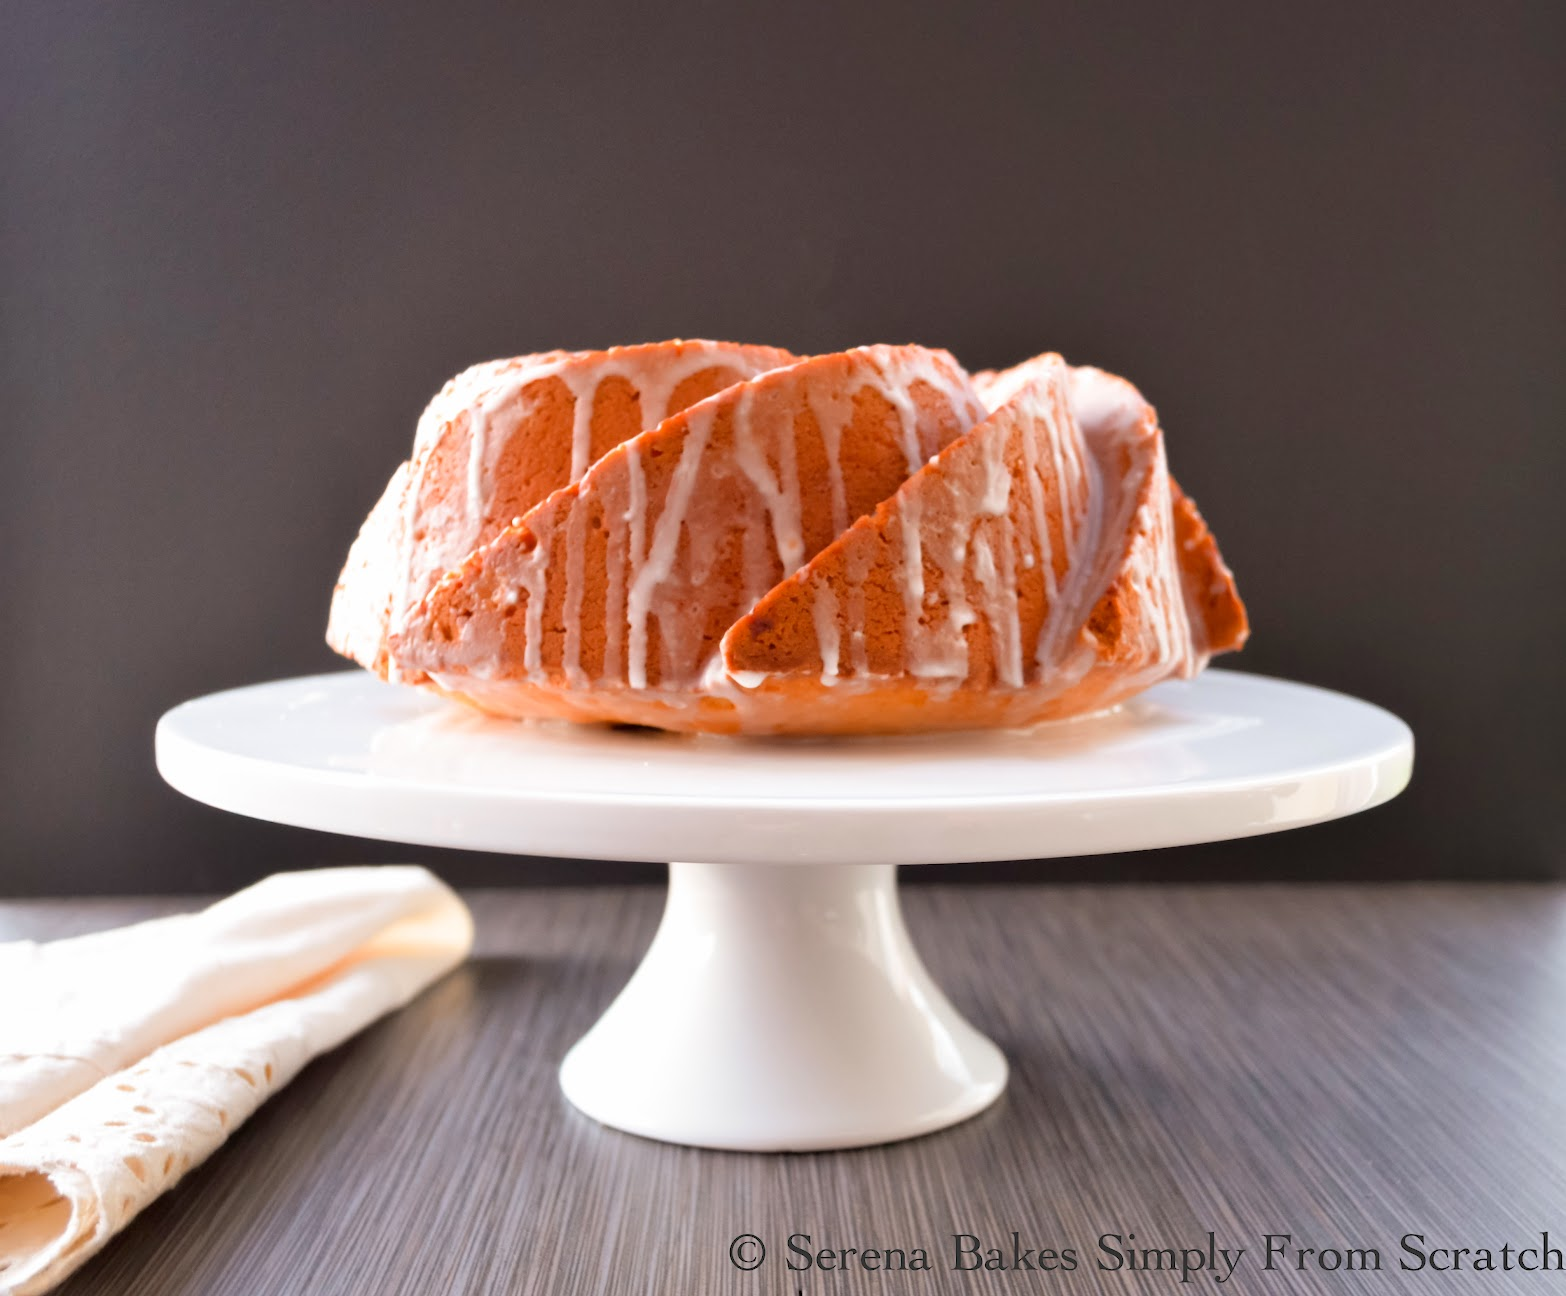 Lemon Lime Pound Cake with Lemon Lime Icing Drizzled Over The Top.